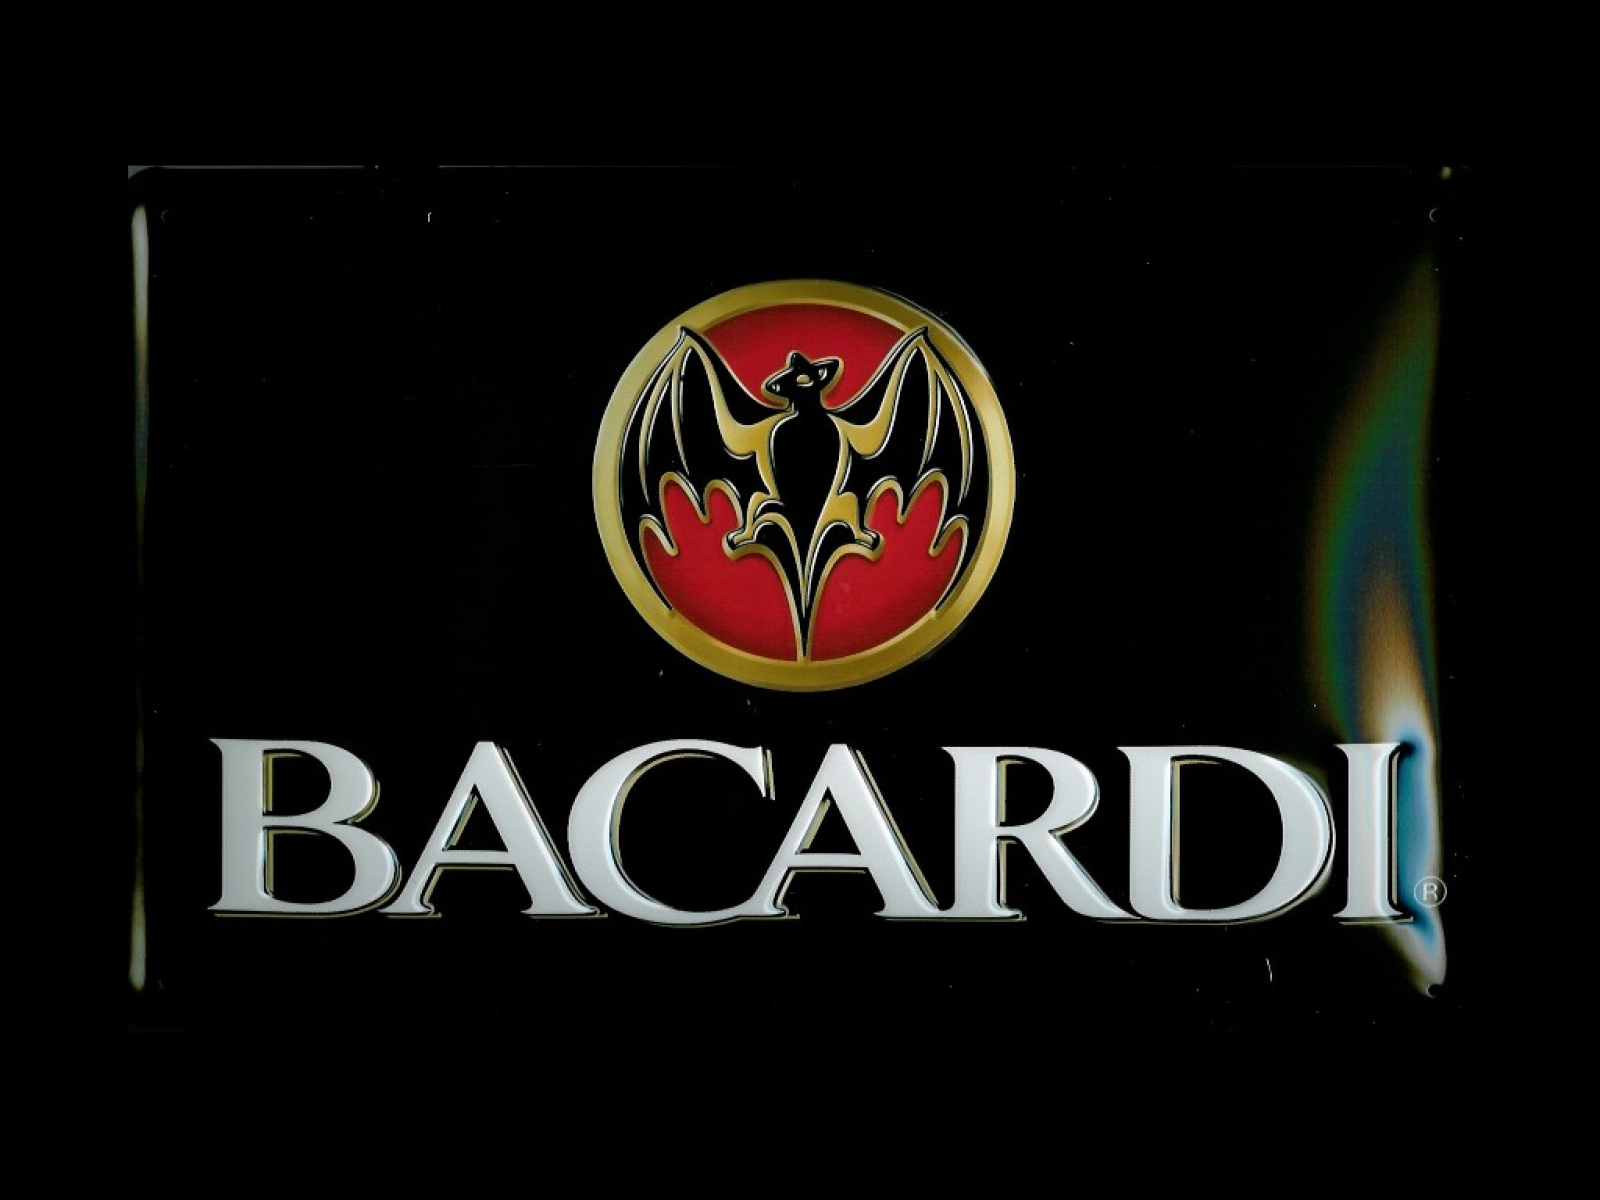 BACARDÍ BLACK Crux Distribution Limited Where To Get Bacardi Product In Lagos